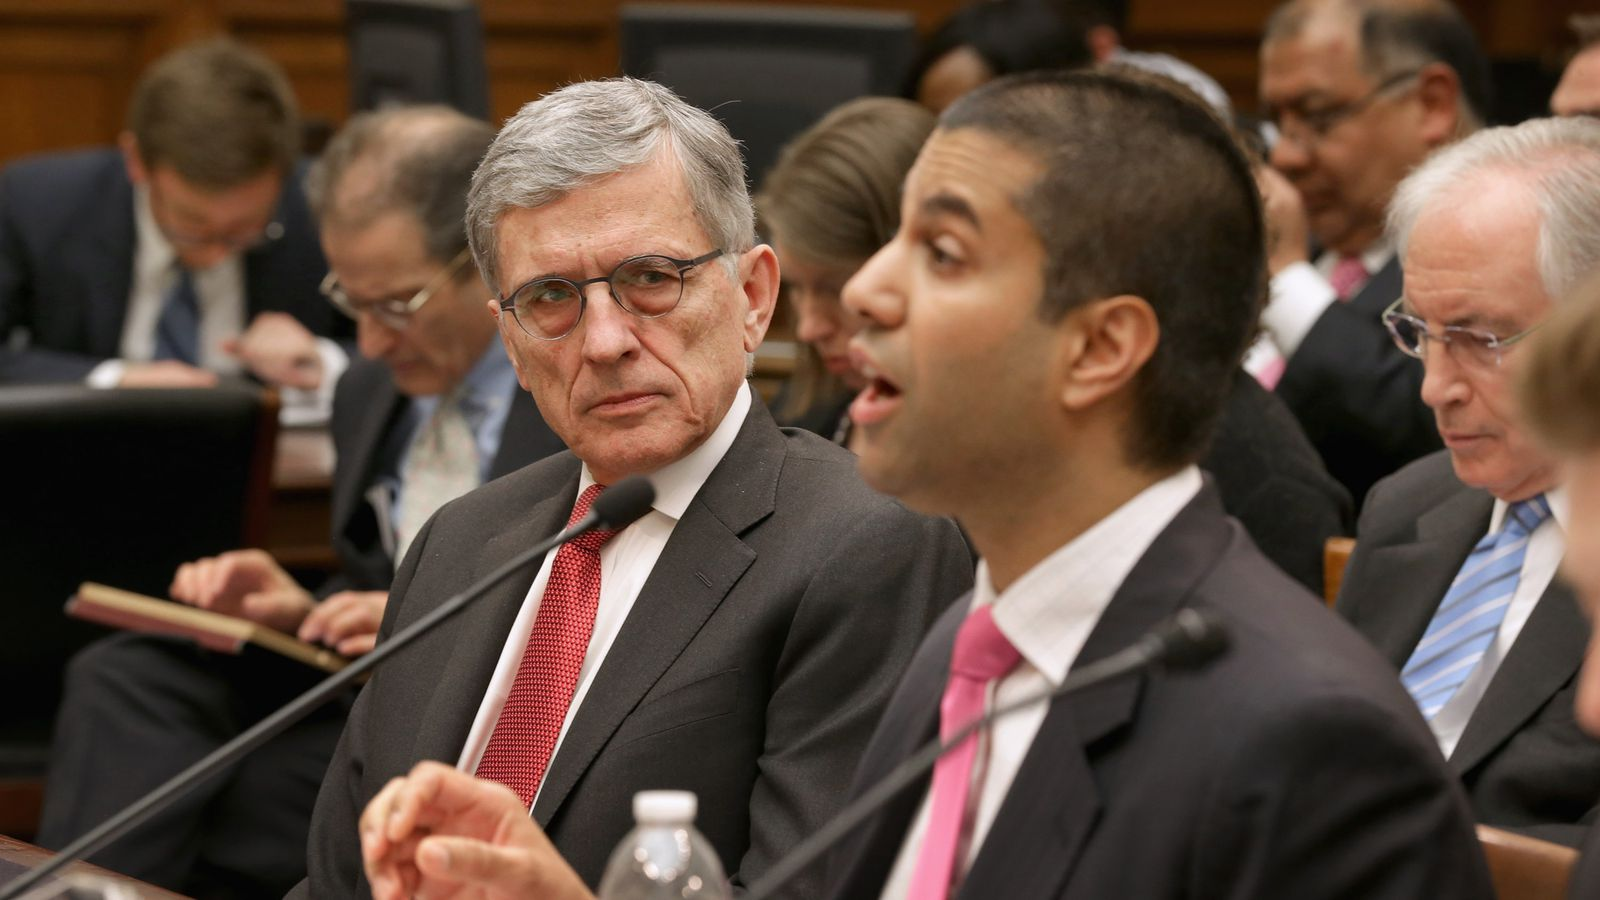 FCC Chairman Pai Met with Facebook and Others to Discuss Net Neutrality Changes to Come